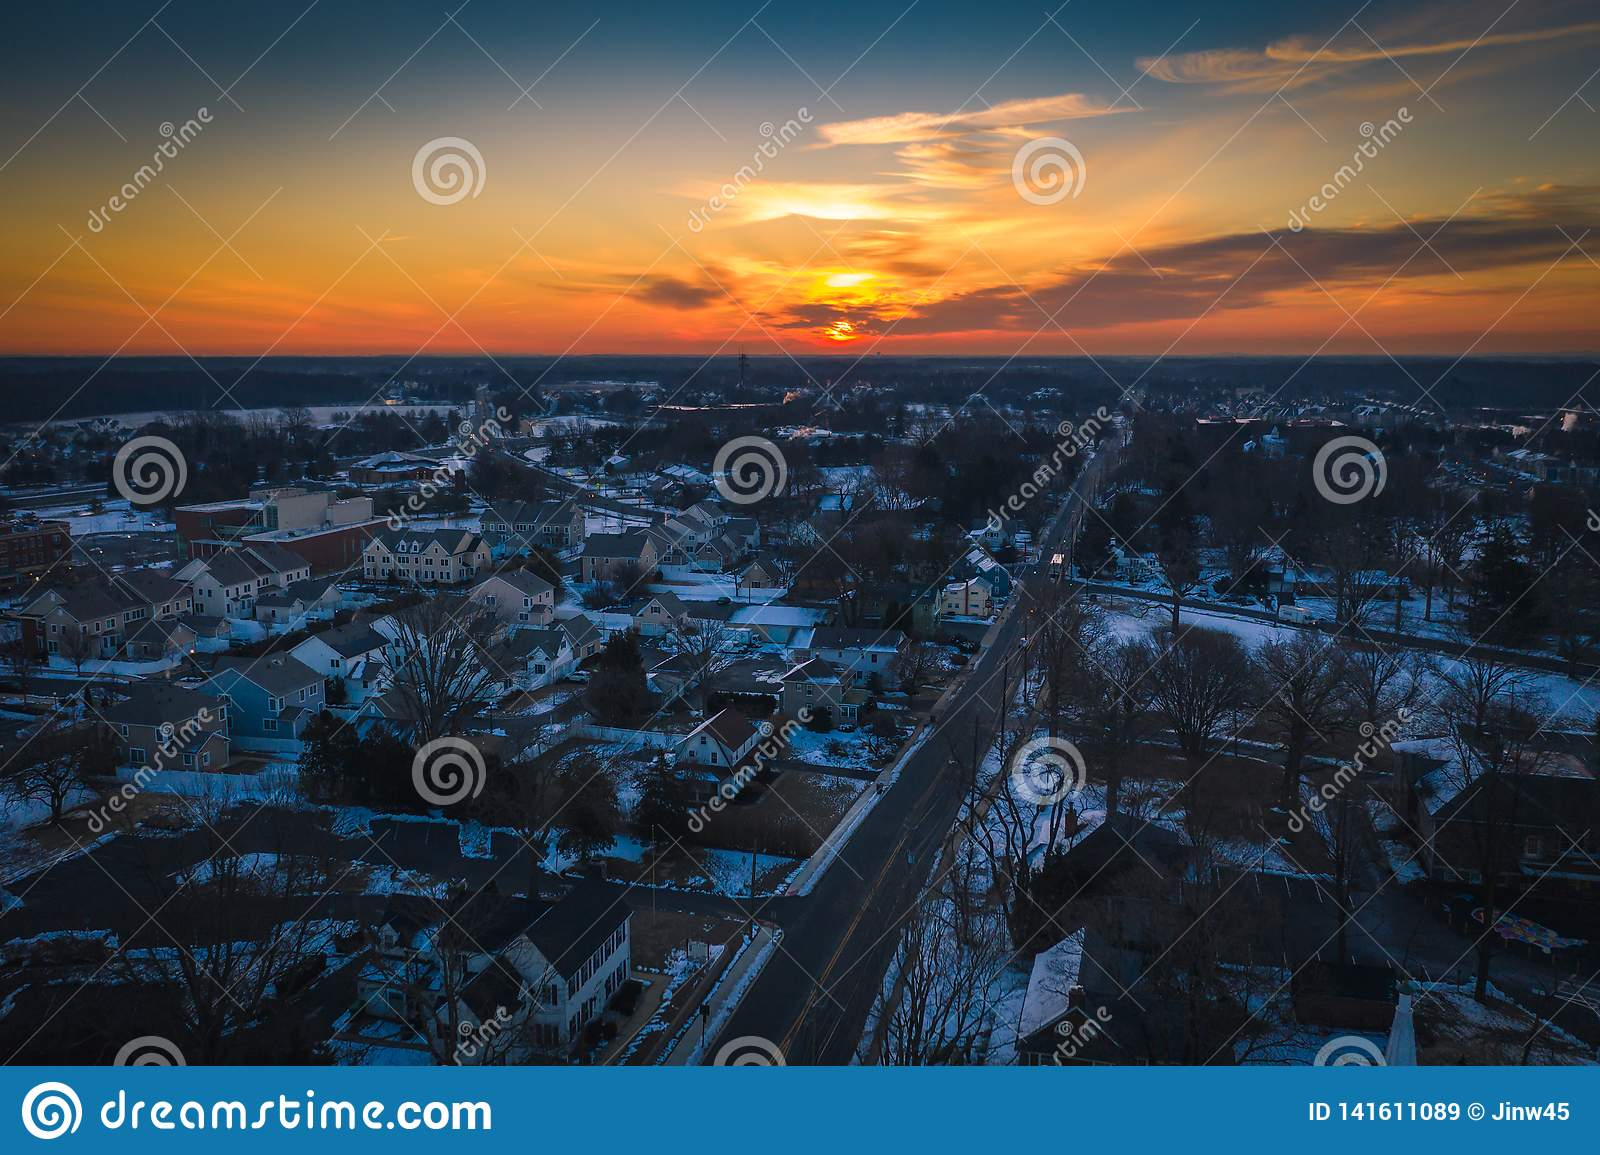 Drone Of Sunrise Sky In Plainsboro Highway New Jersey Stock